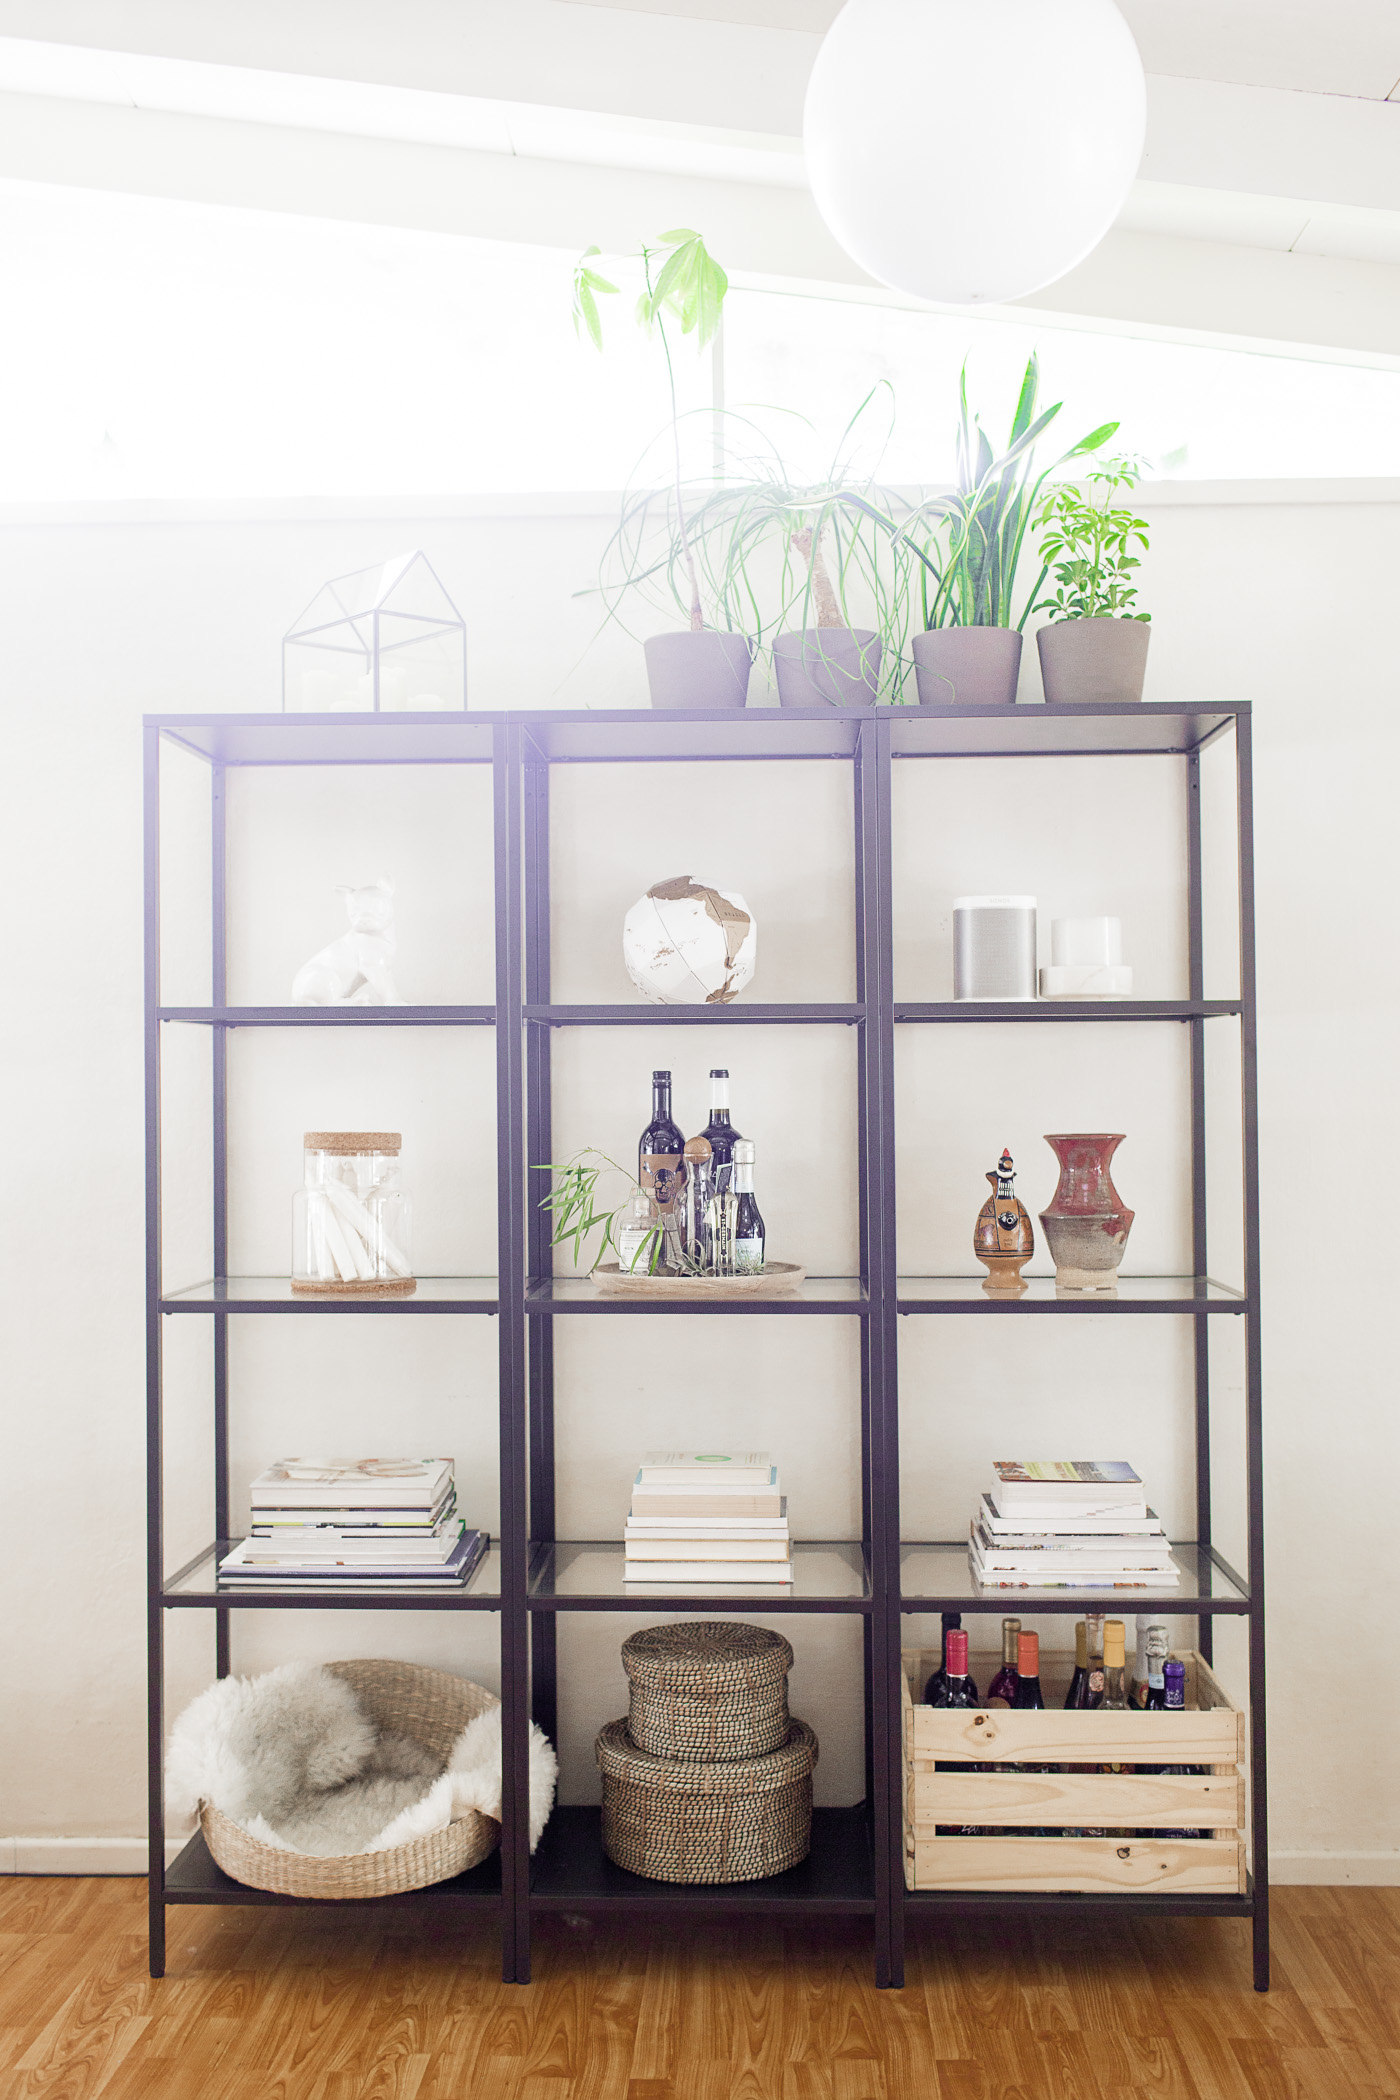 Easy steps to style a shelf, featuring my Ikea Vittsjö shelves.